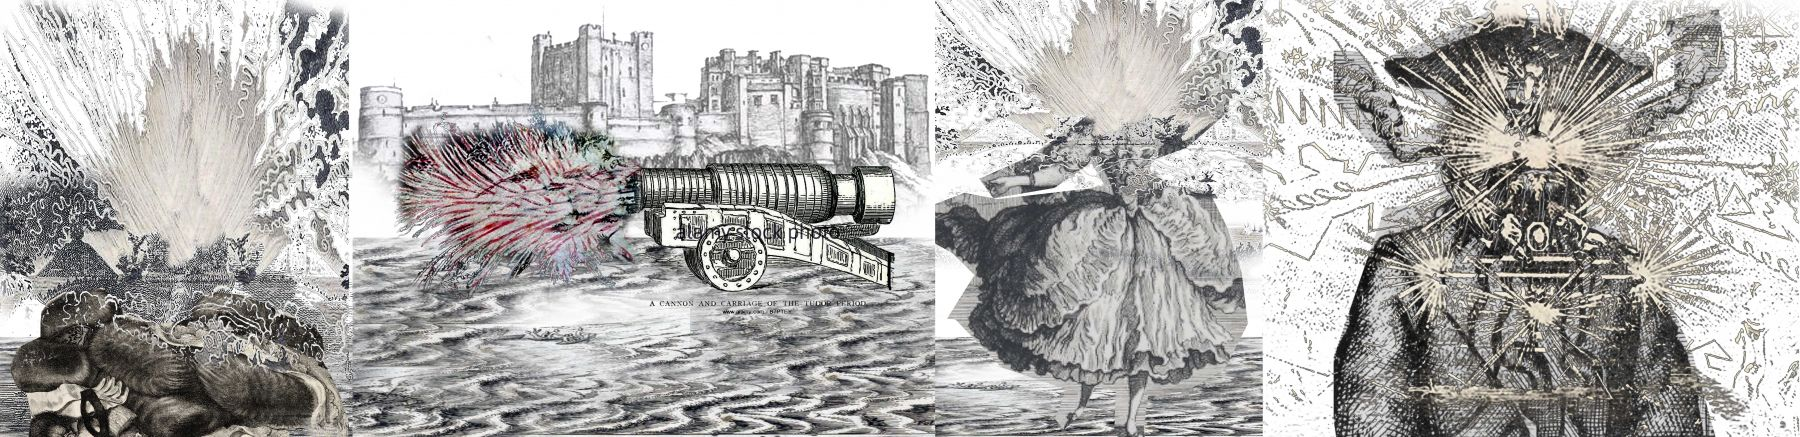 De Beijer's digital collages, altering found 18th-century engravings with colorful explosions to animate the works.